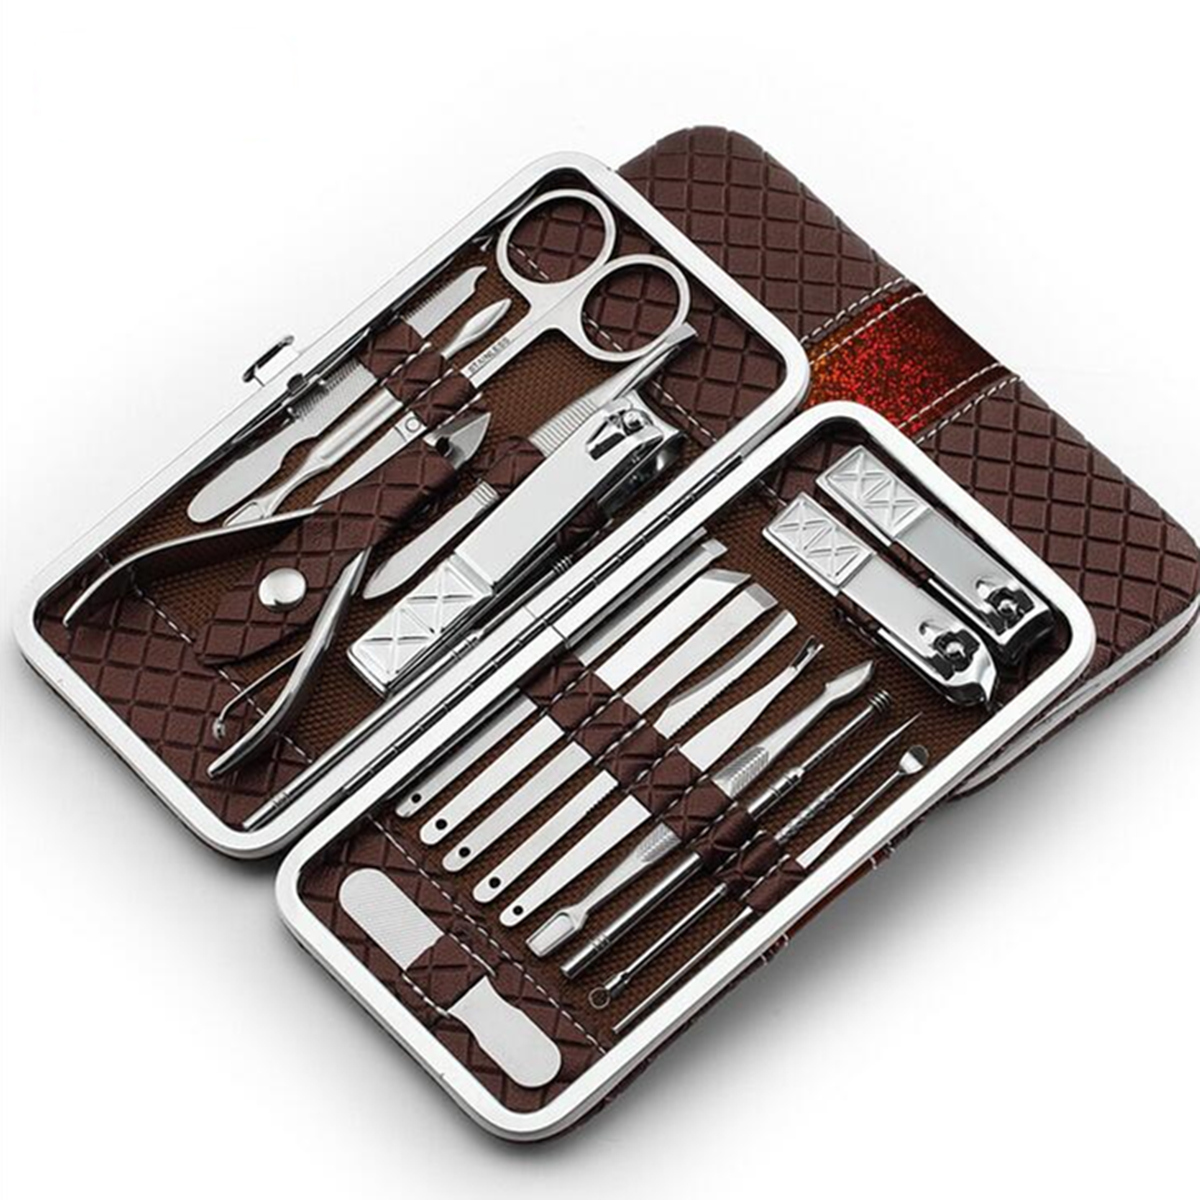 Y.F.M 18Pcs Stainless Steel Personal Manicure Set Pedic